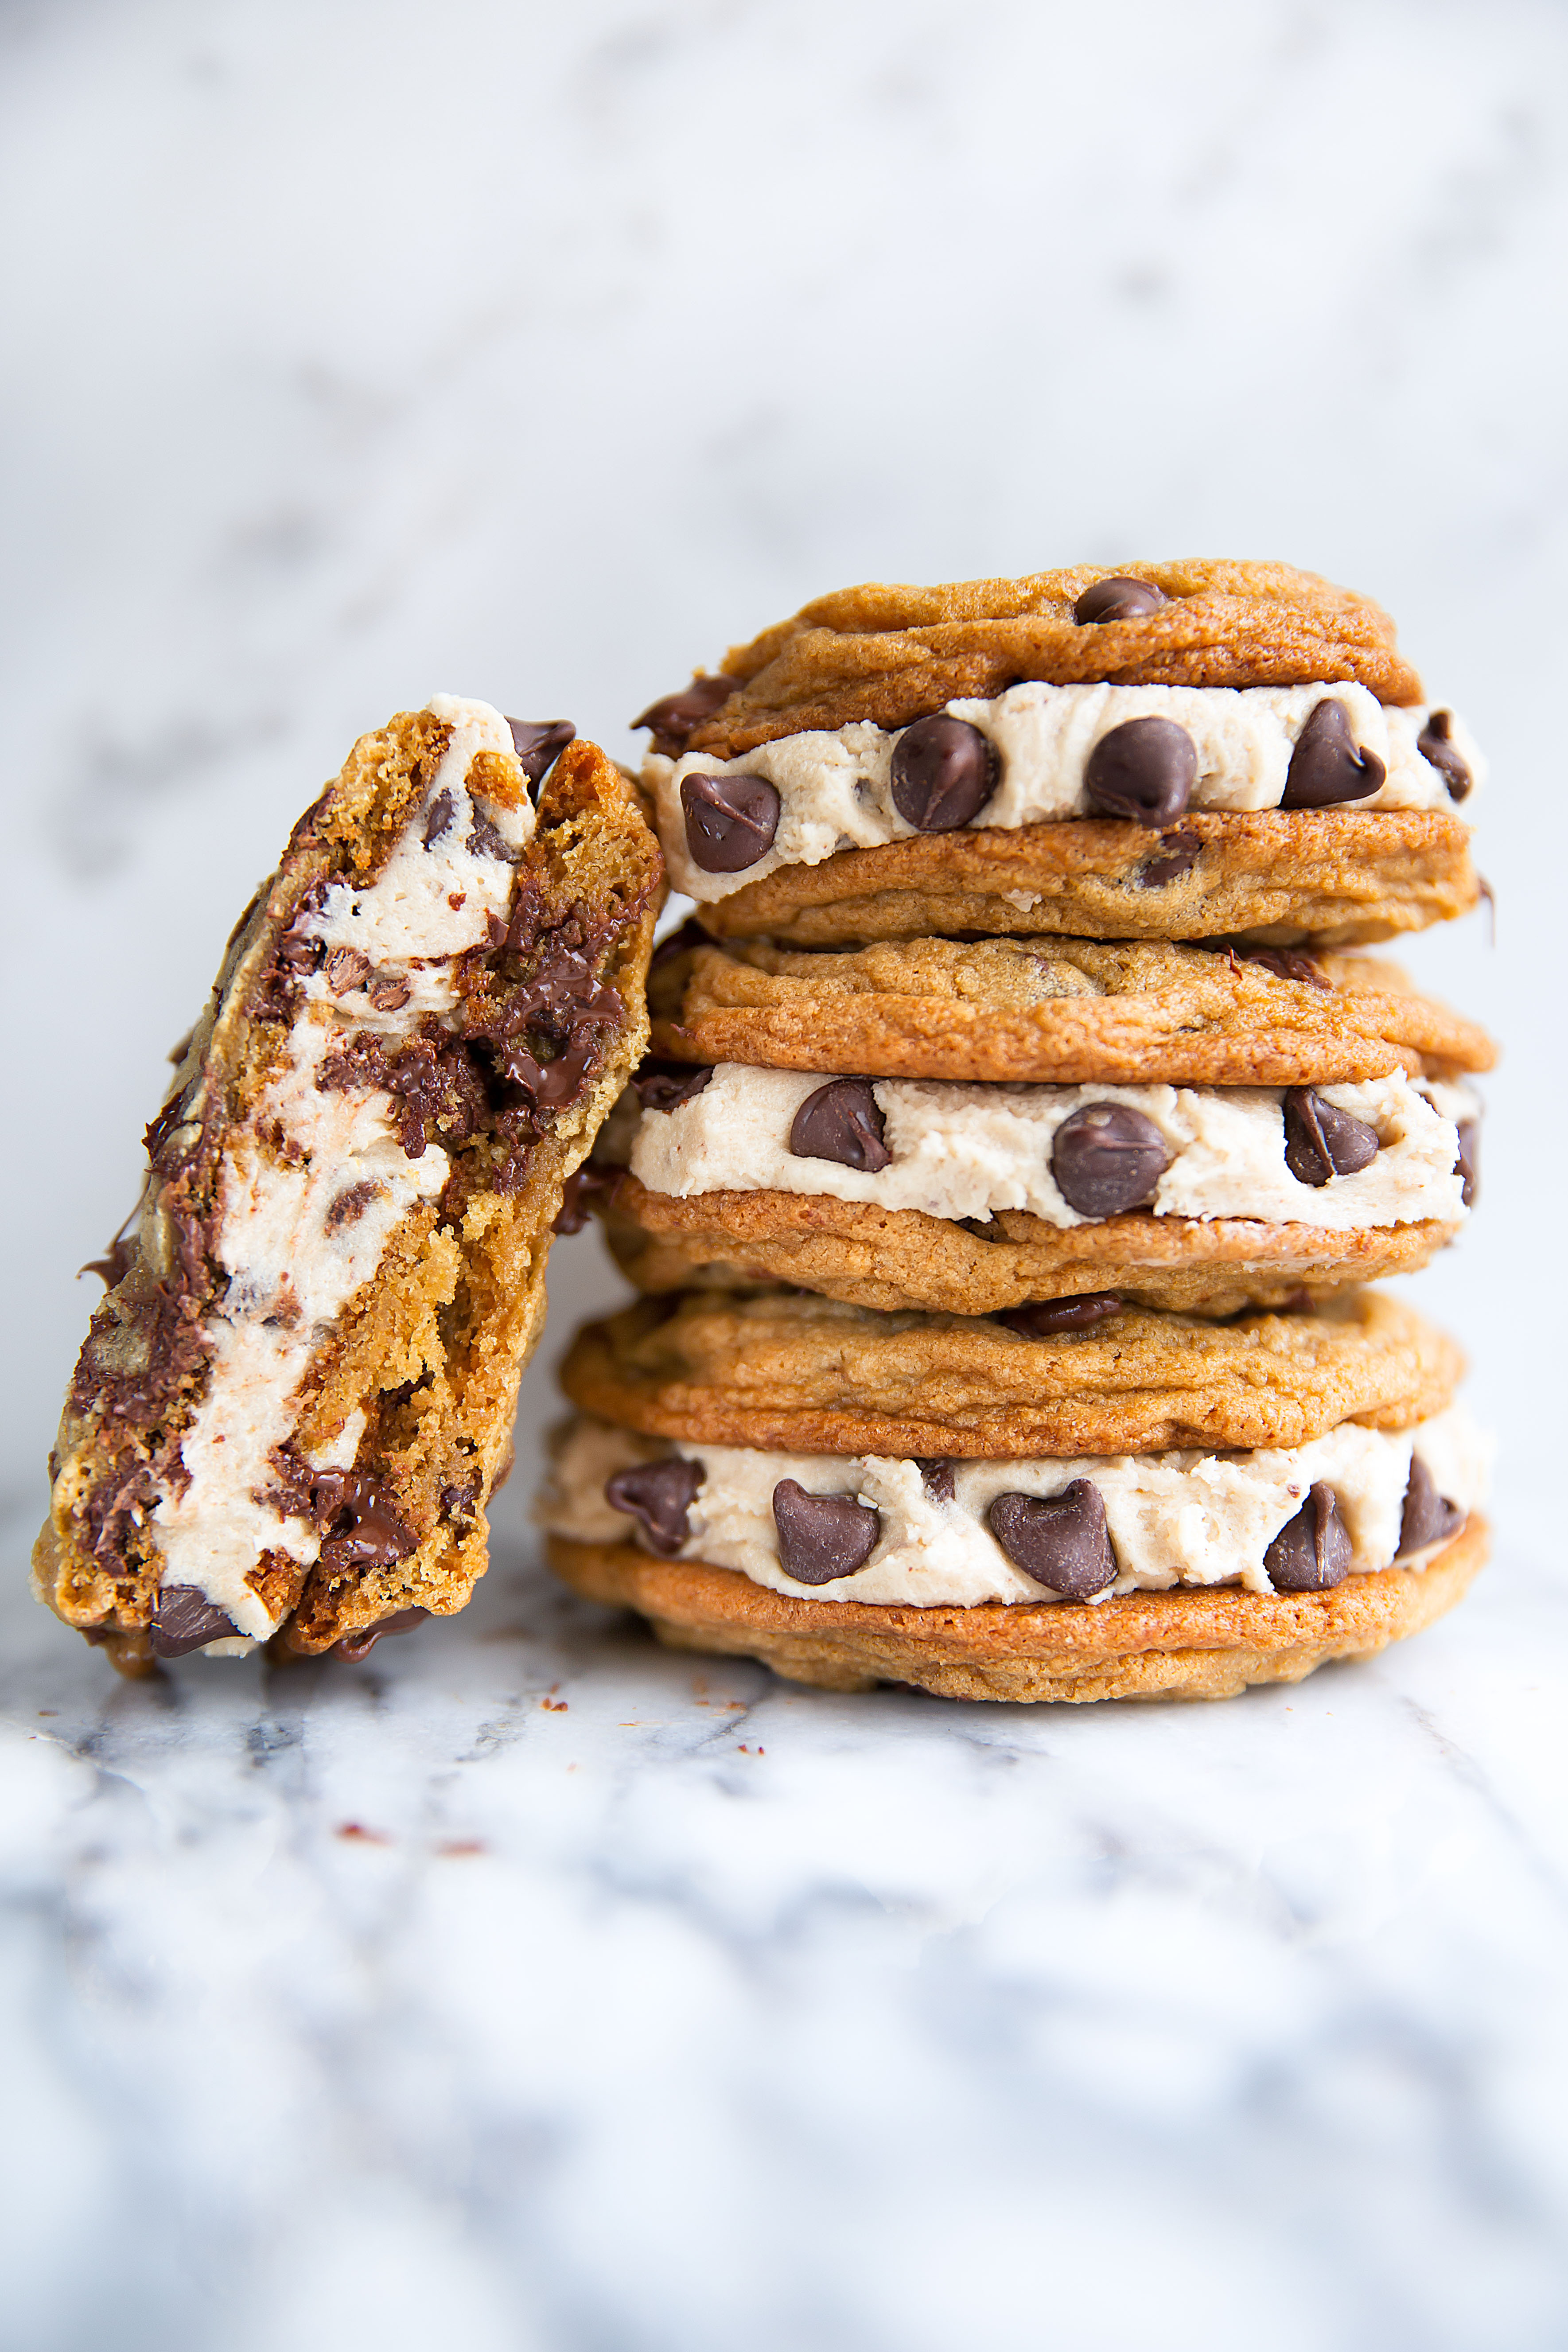 Chocolate chip cookie dough frosting sandwiched between giant chocolate chip cookies. Heaven. | via Broma Bakery | #chocolatechipcookies #cookiedough #cookiedoughfrosting